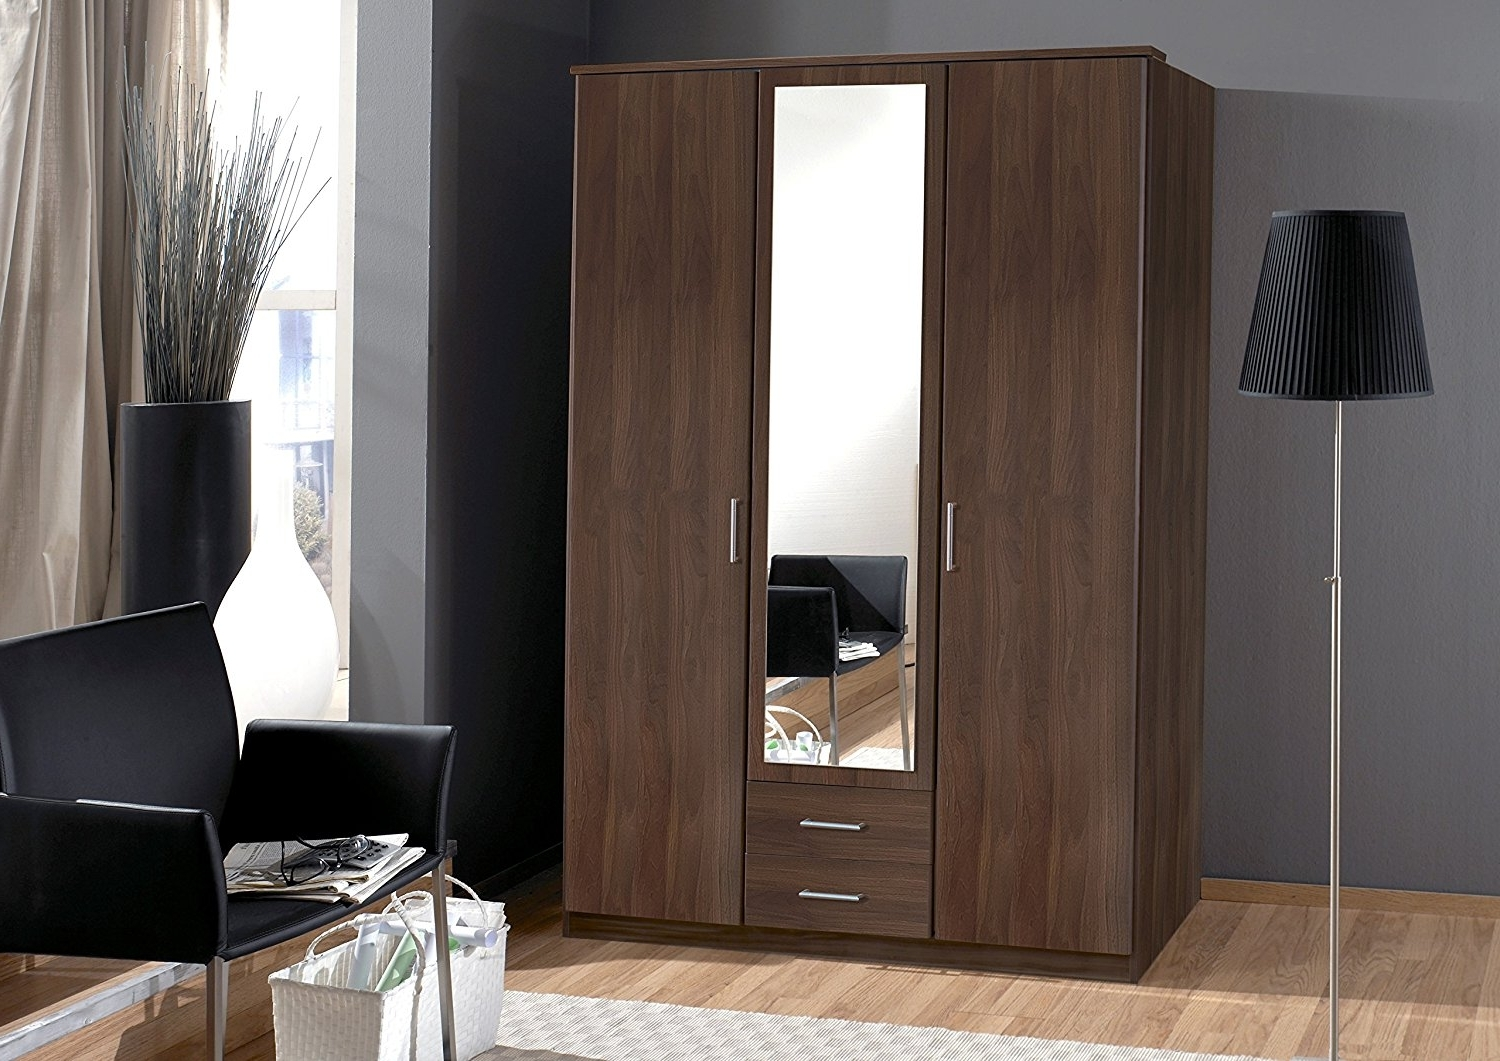 2017 4 Door Wardrobes With Mirror And Drawers Within Osaka Walnut Effect 2/3/4 Door Wardrobe Mirror German Bedroom (View 2 of 15)